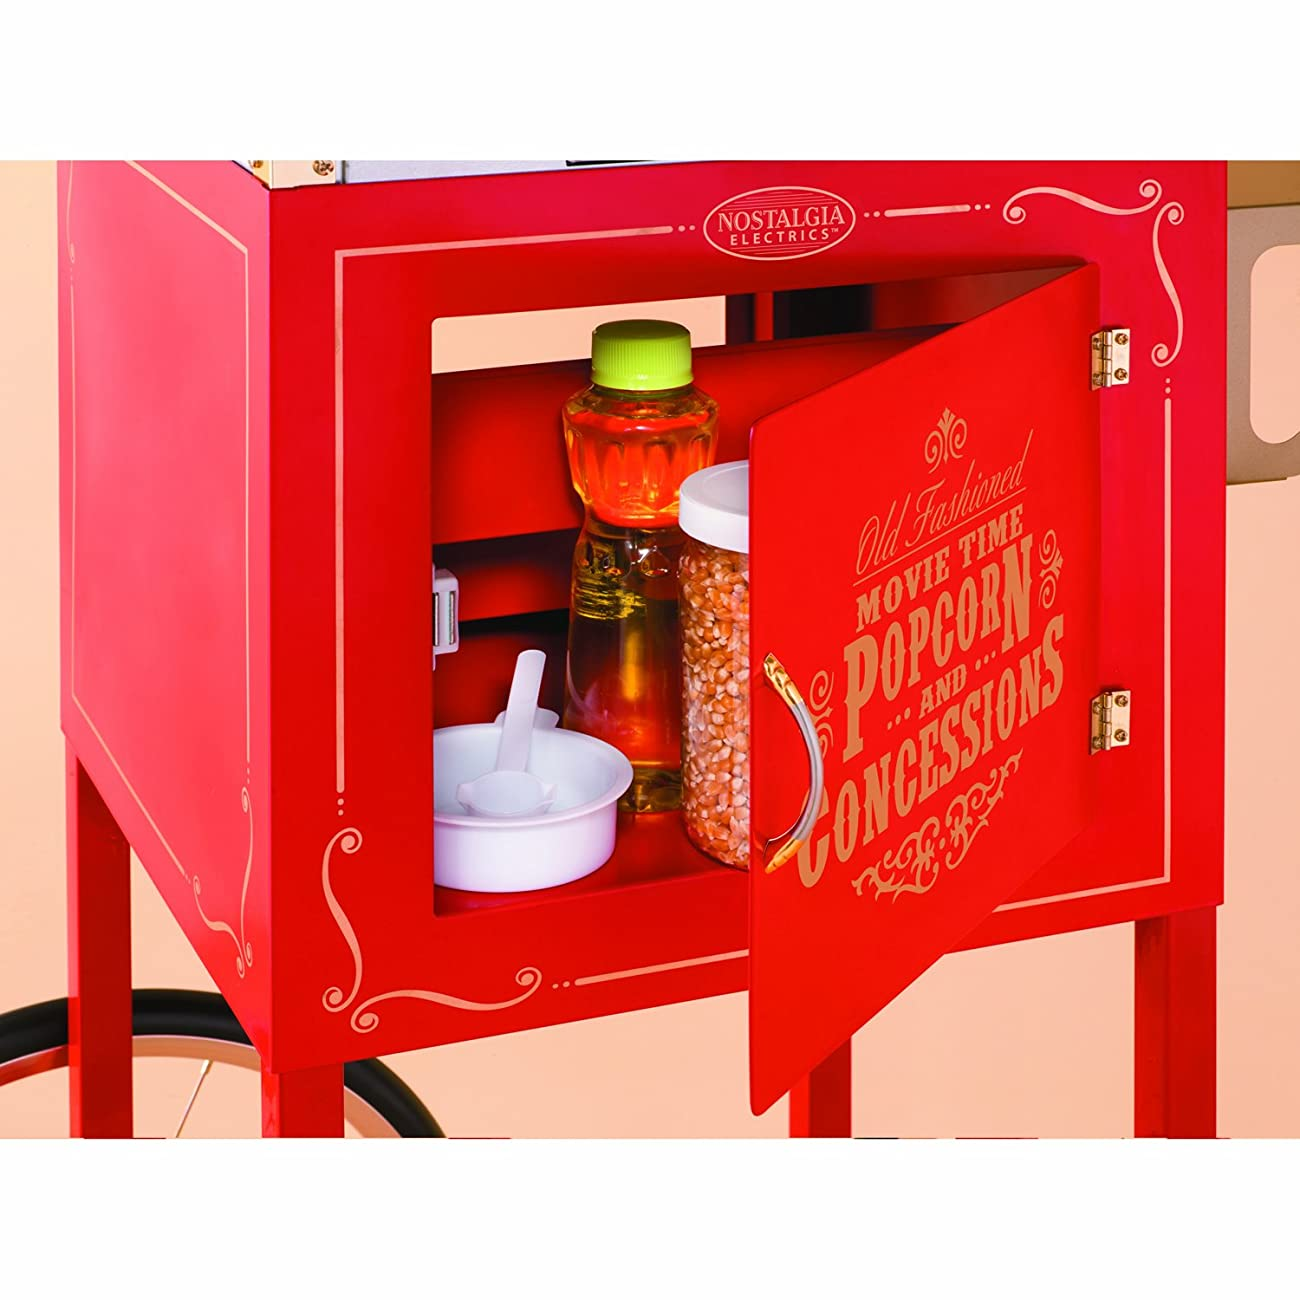 Nostalgia CCP610 59-Inch Tall Vintage Collection 8-Ounce Kettle Popcorn & Concession Cart 2